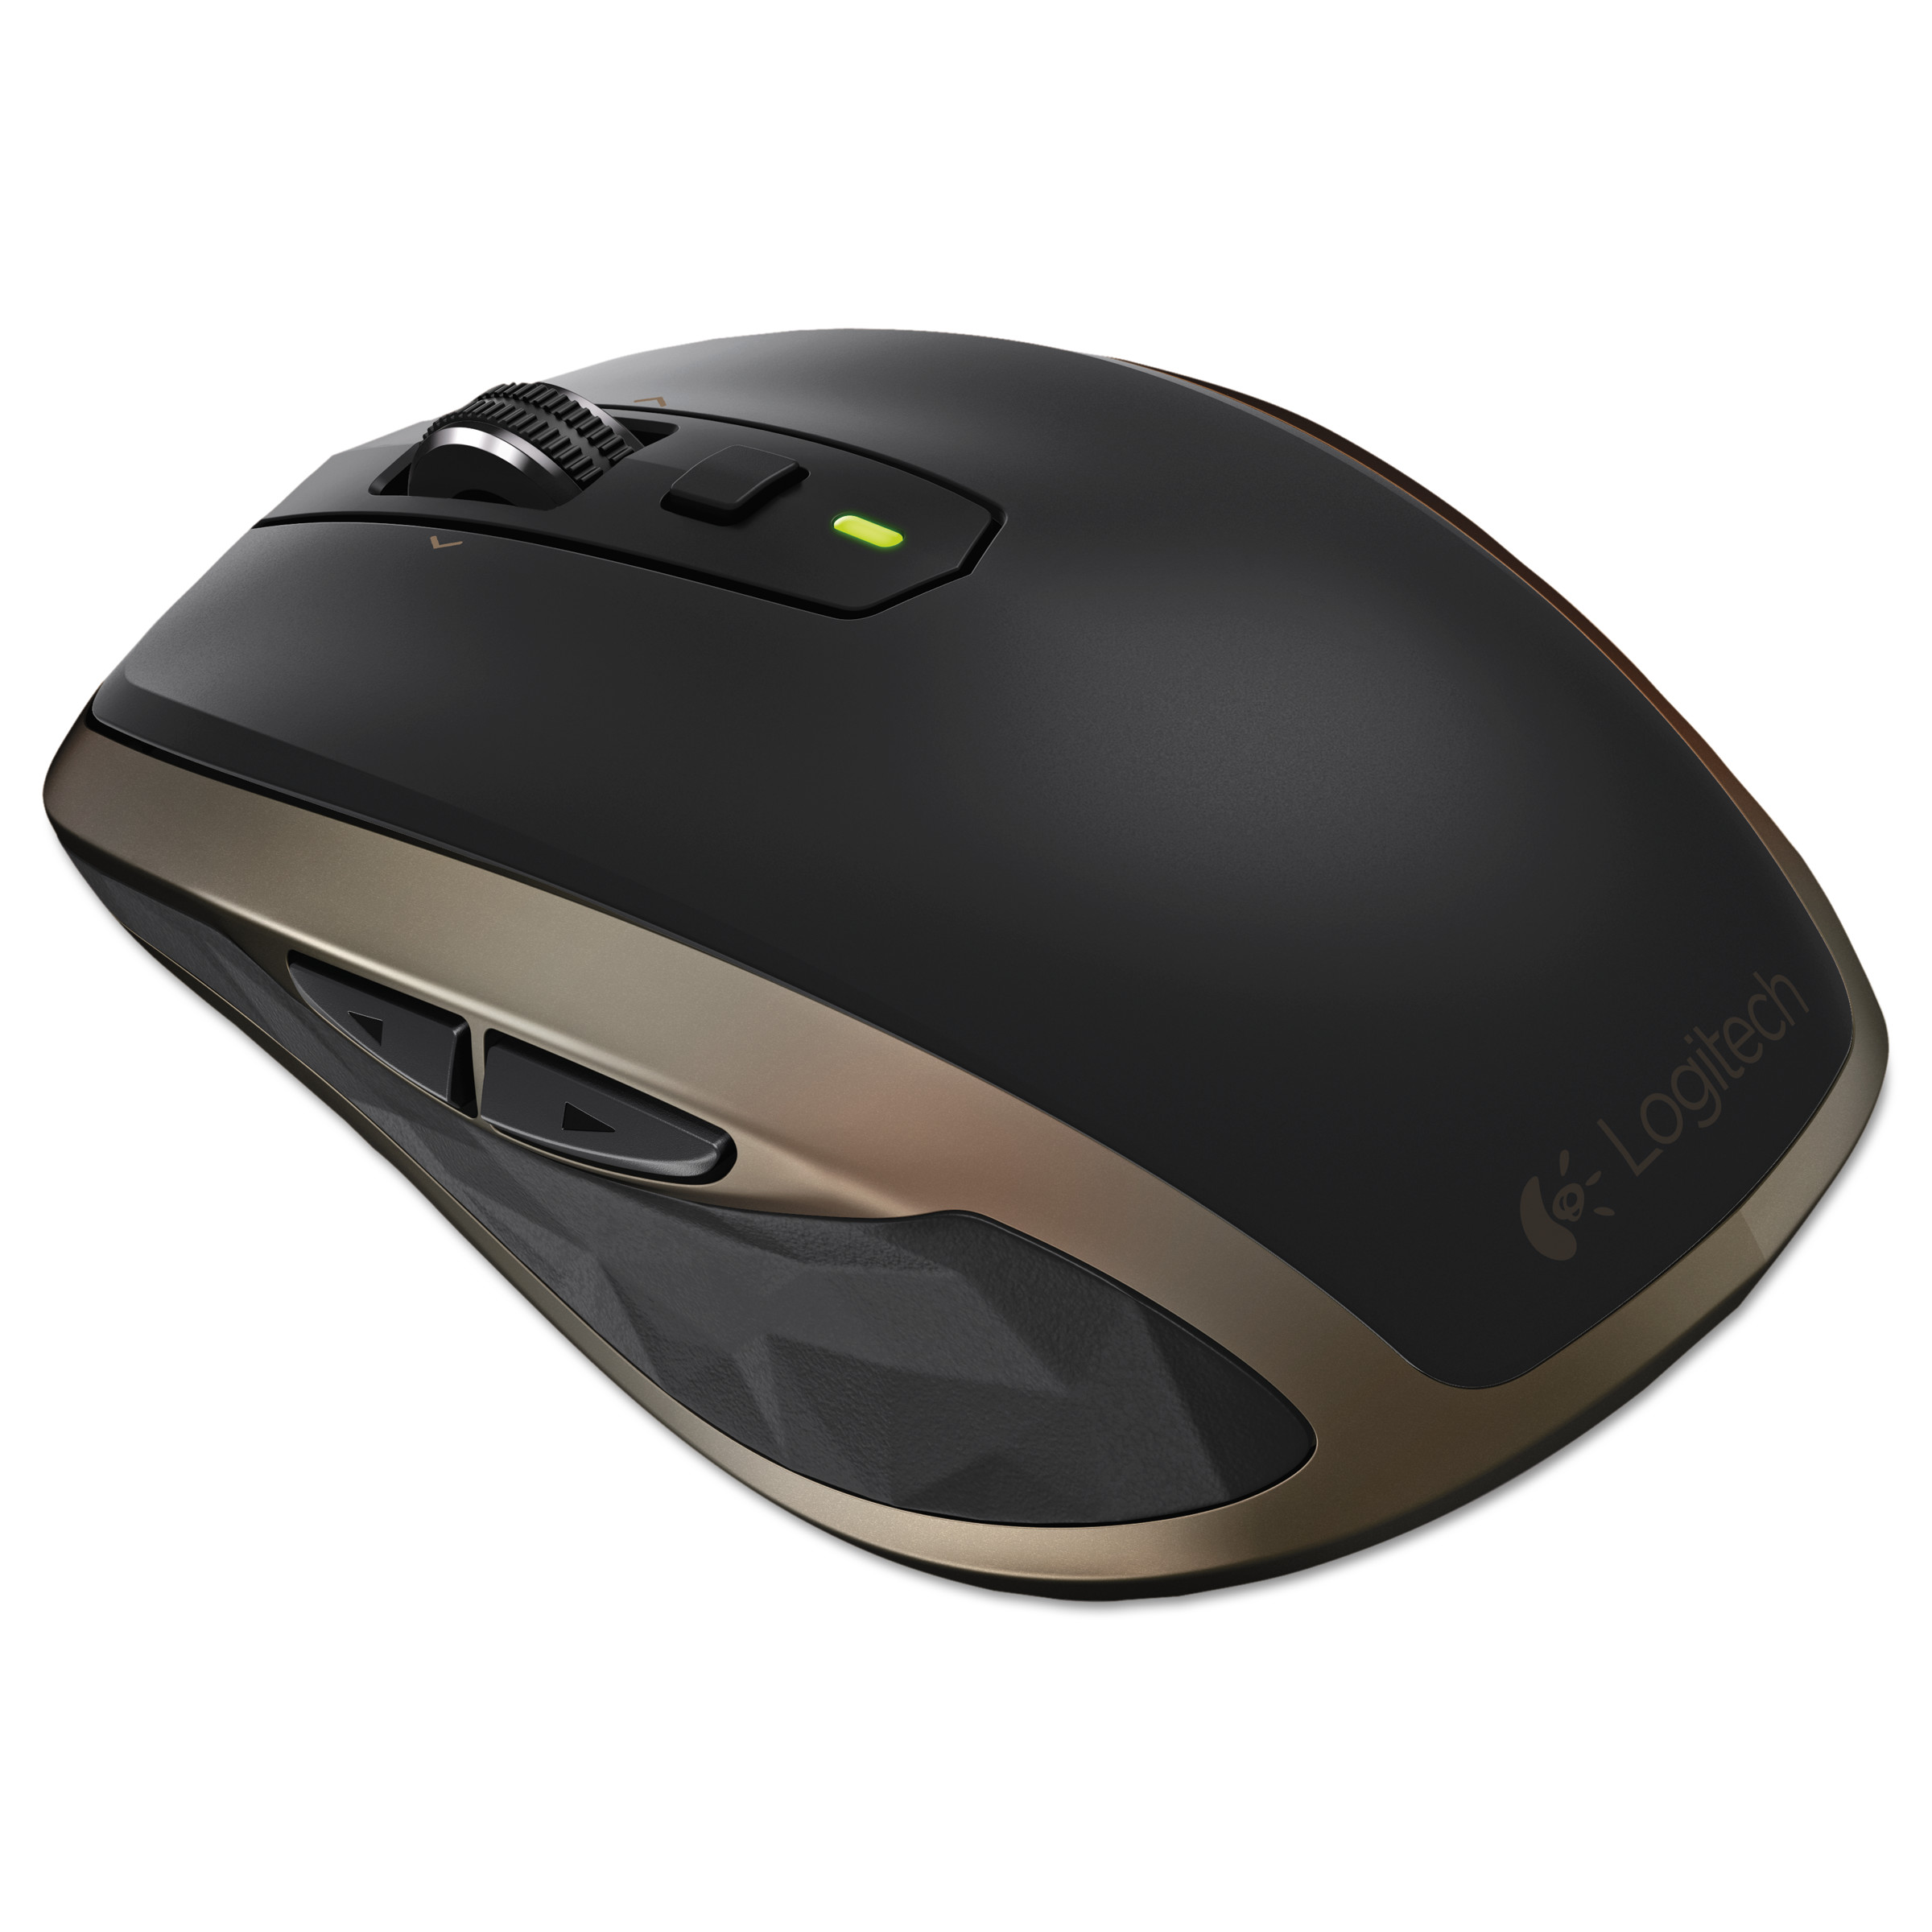 Logitech Anywhere Mouse MX, Wireless, Glossy Finish, Black by Logitech